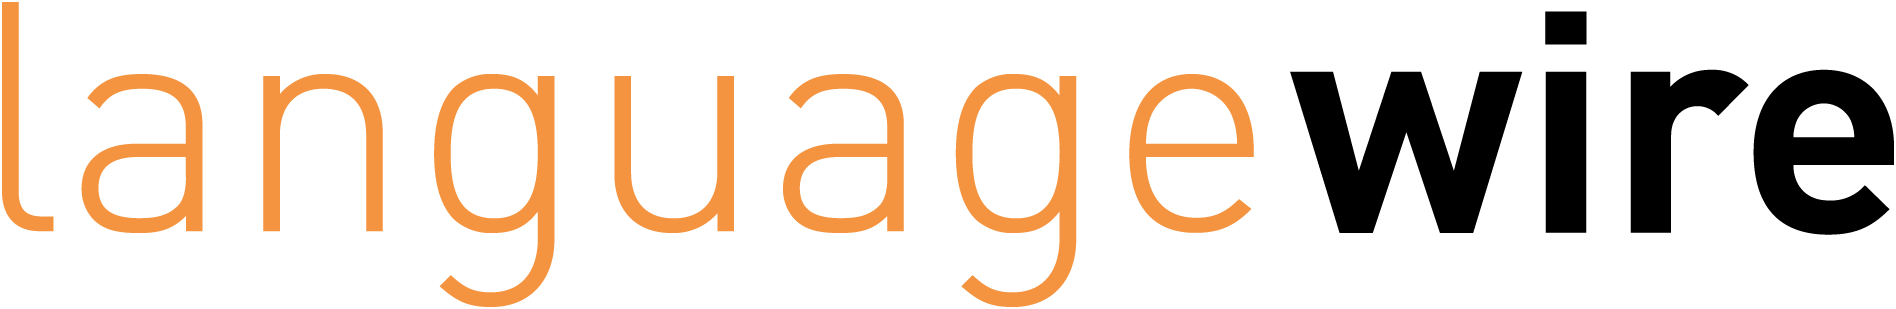 LanguageWire-logo